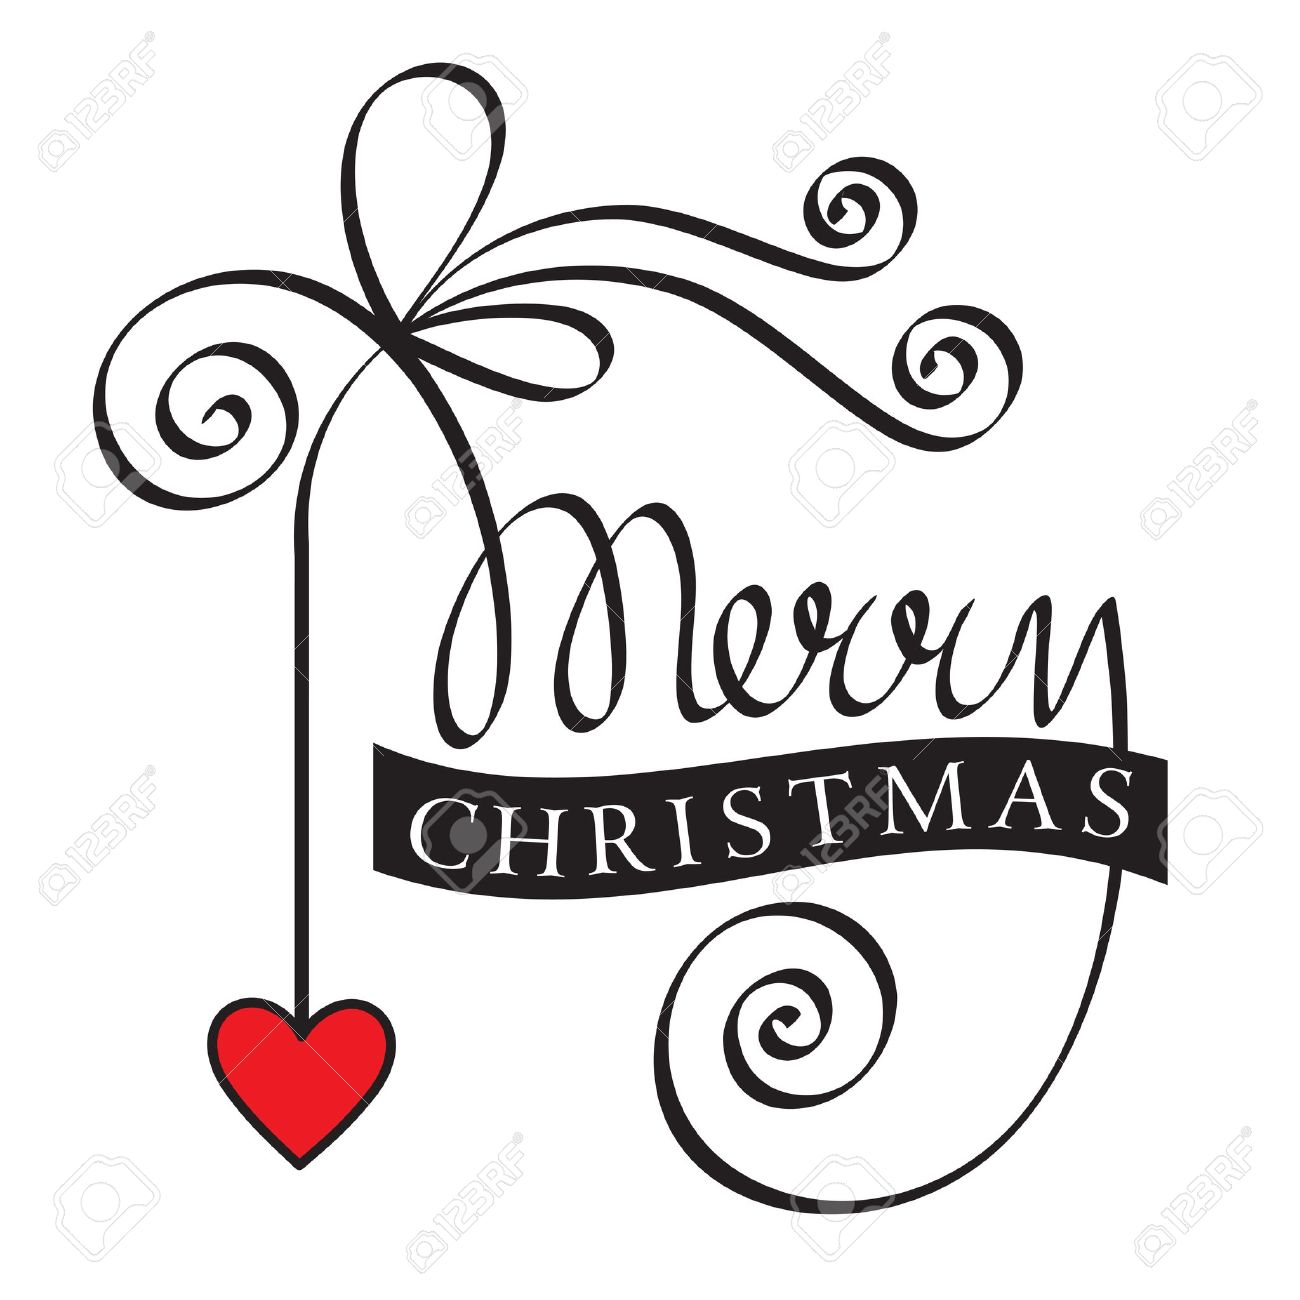 Merry Christmas Hand Lettering With Heart Royalty Free Cliparts ...